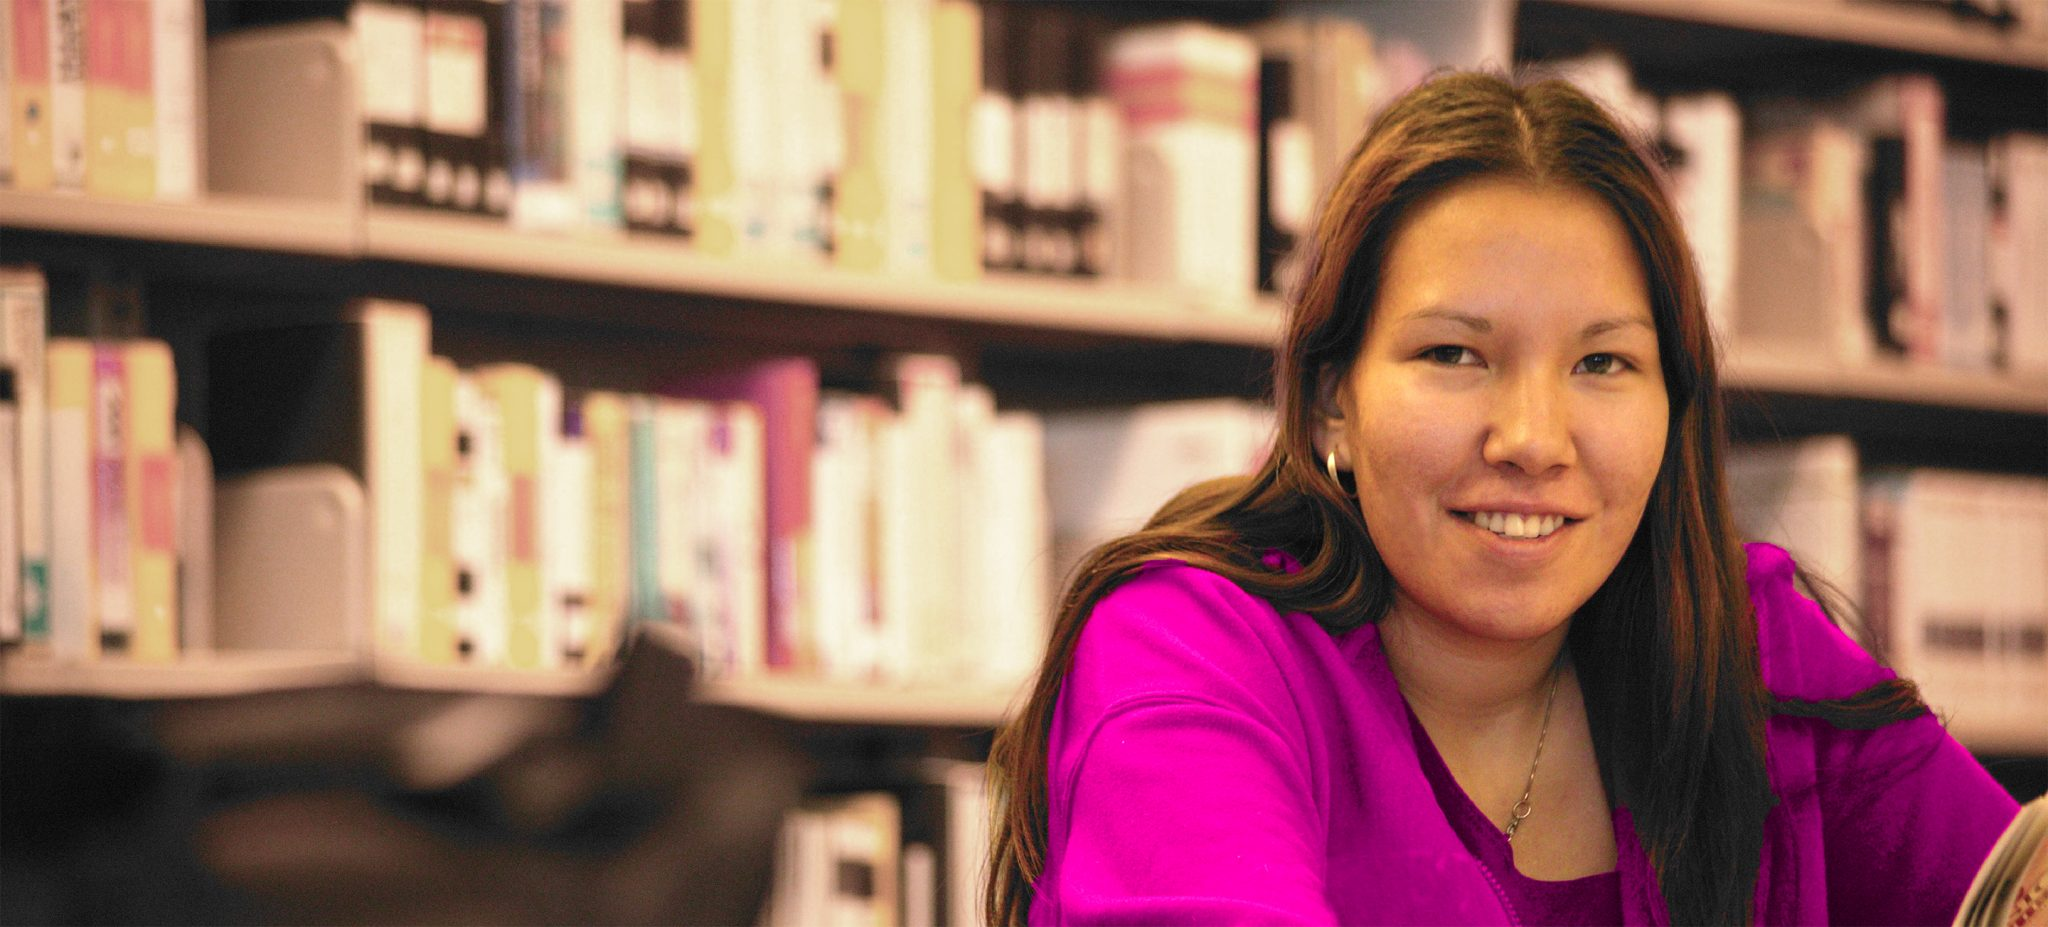 A young indigenous woman in a library.